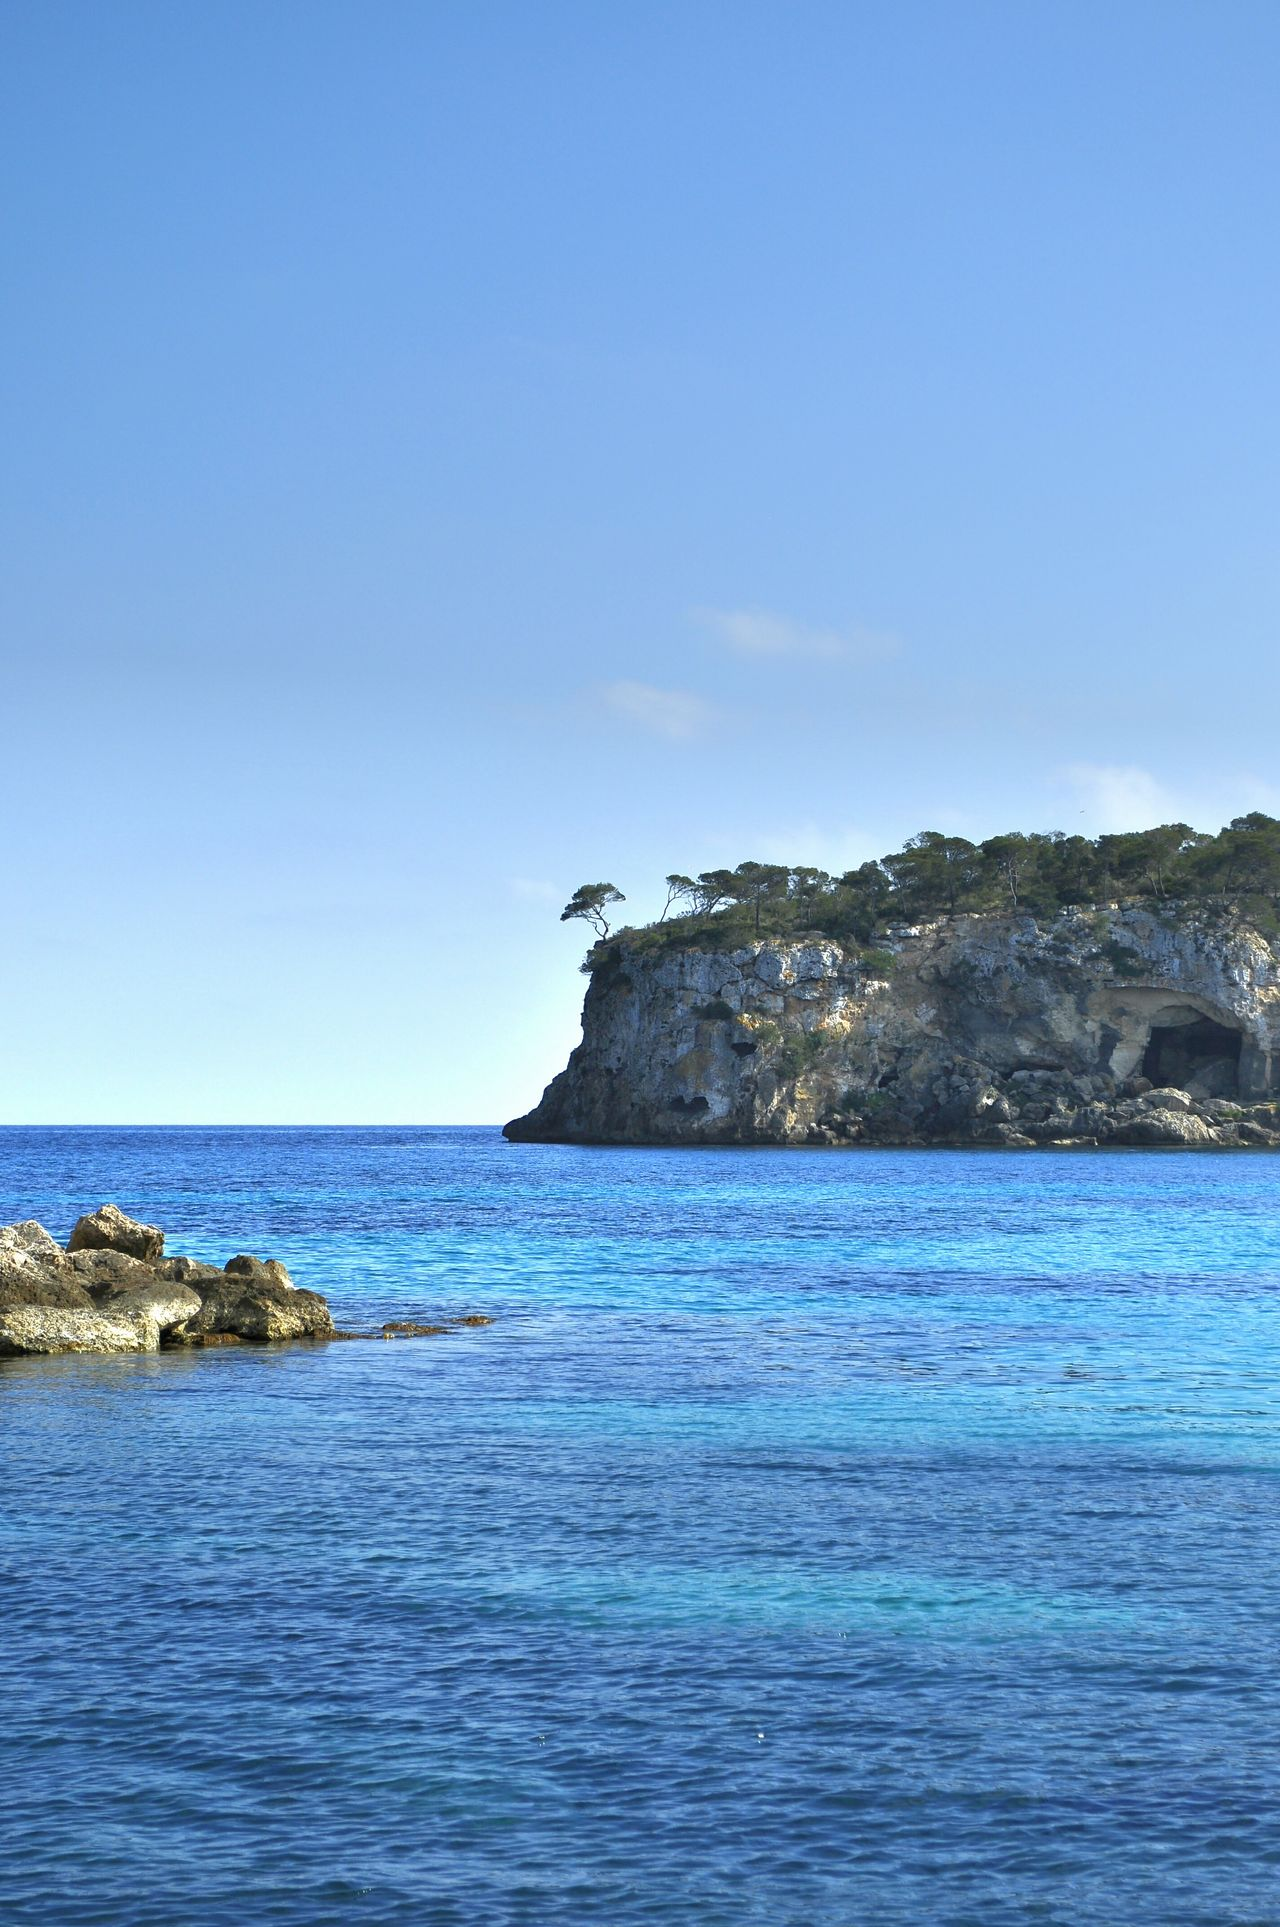 Mallorca Chrixxo Sea Blue Scenics Water Landscape Tranquility Outdoors No People Beauty In Nature Horizon Over Water Beach Day Nature Sky